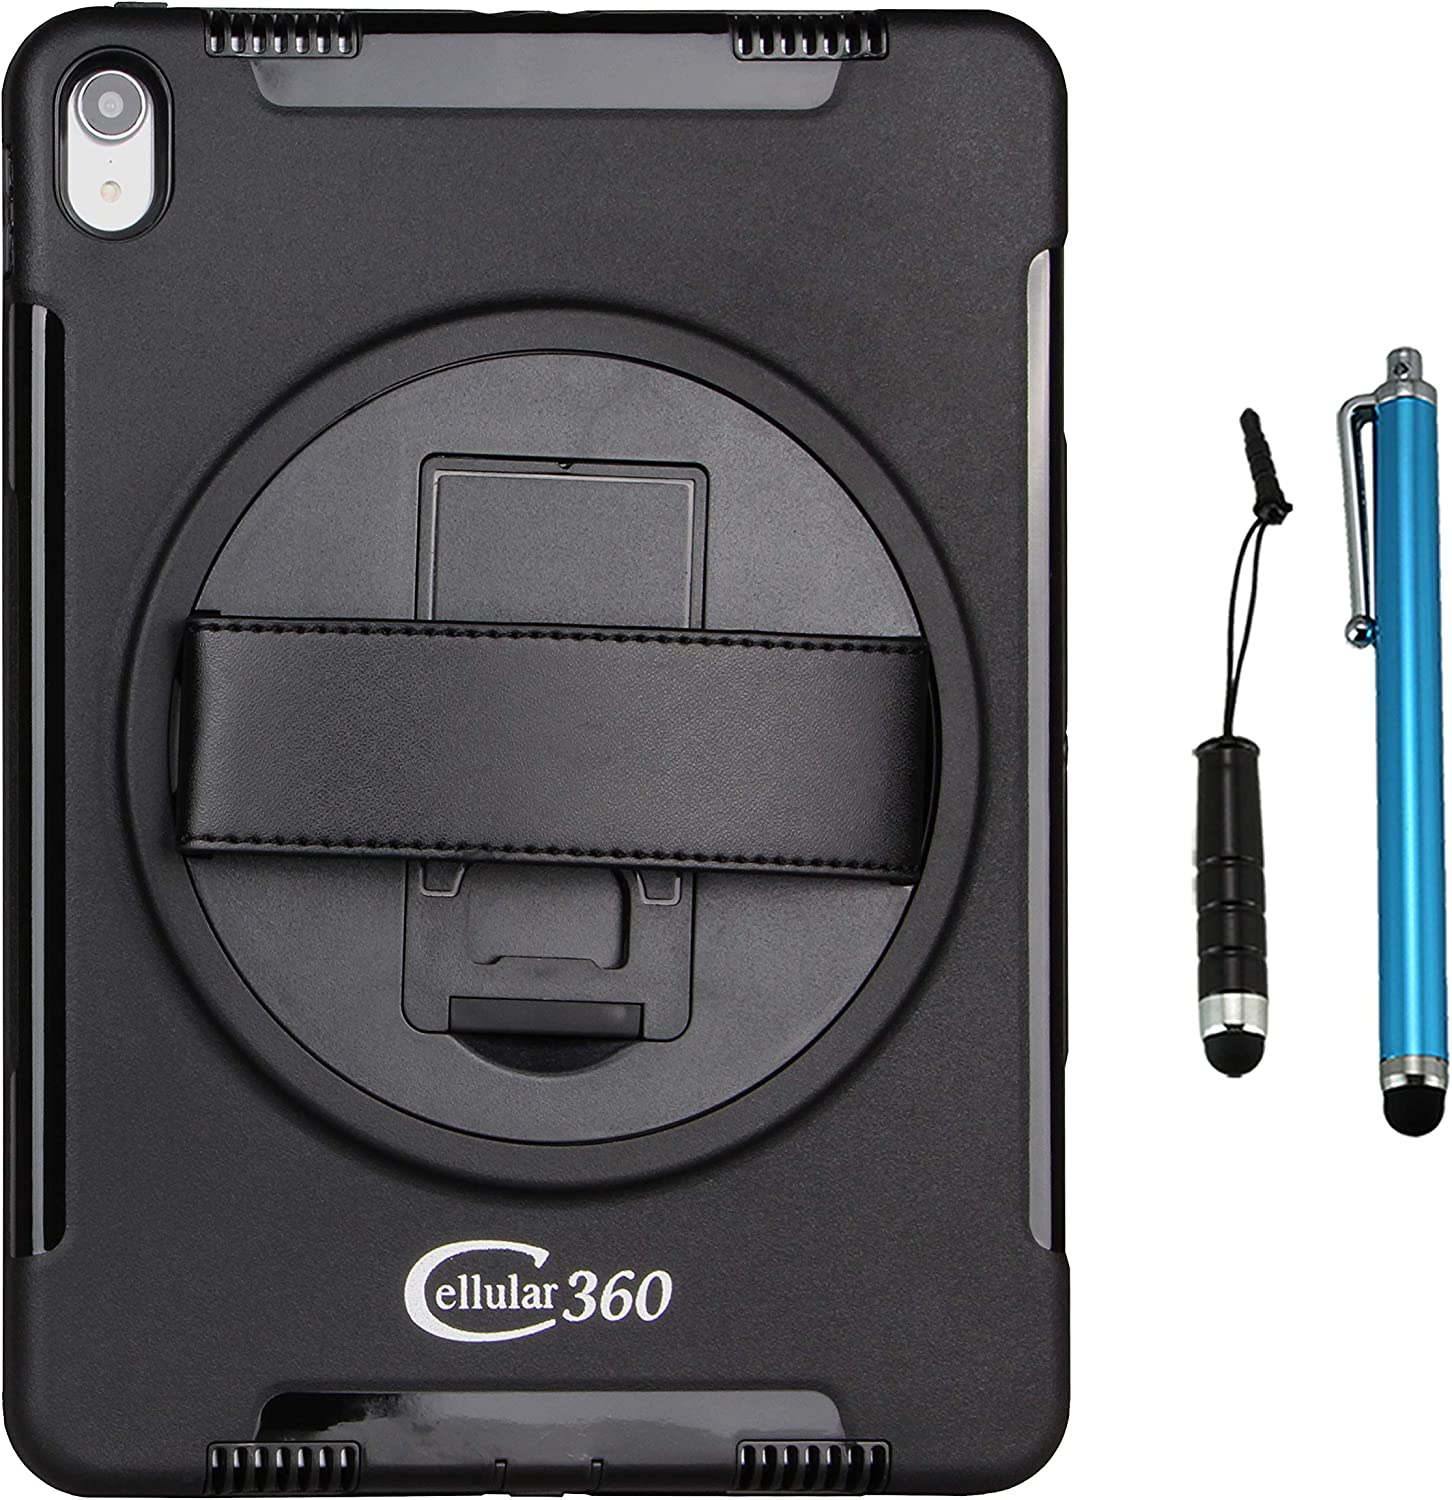 Cellular360 Shockproof Case for iPad Pro 12.9 (2017 2nd Gen and 2015 1st Gen),Handy Case with a 360 Degree Rotatable Kickstand and Handle (Black)